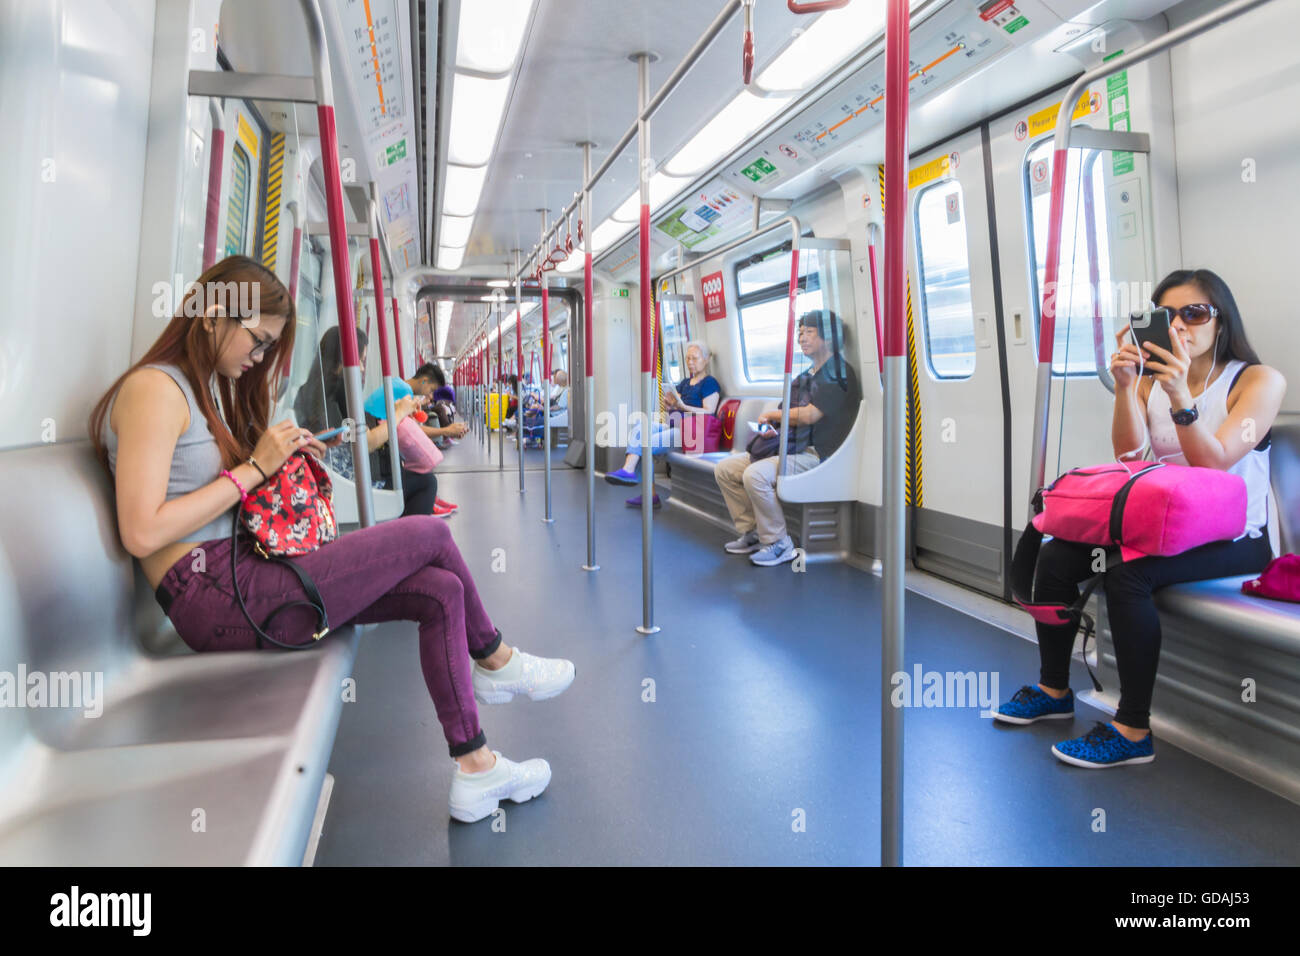 Passengers traveling on HK Tung Chung Line MTR - Stock Image